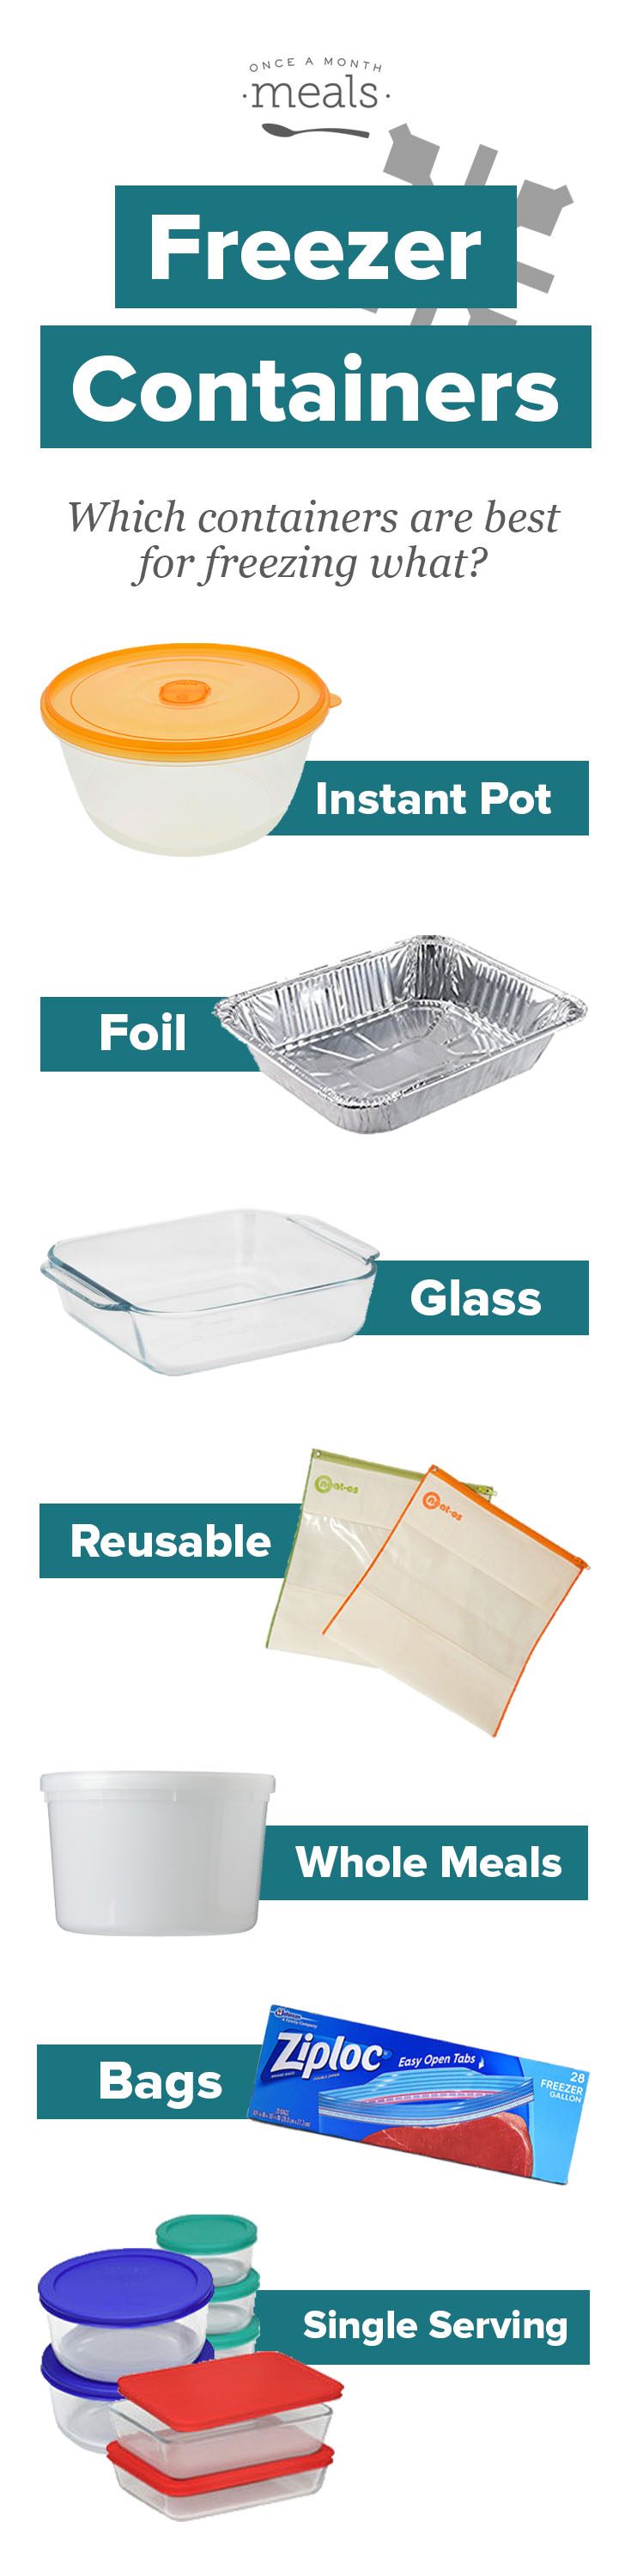 Freezer Containers: Which containers are best for freezing what? We've got all the details, products, tips and more!